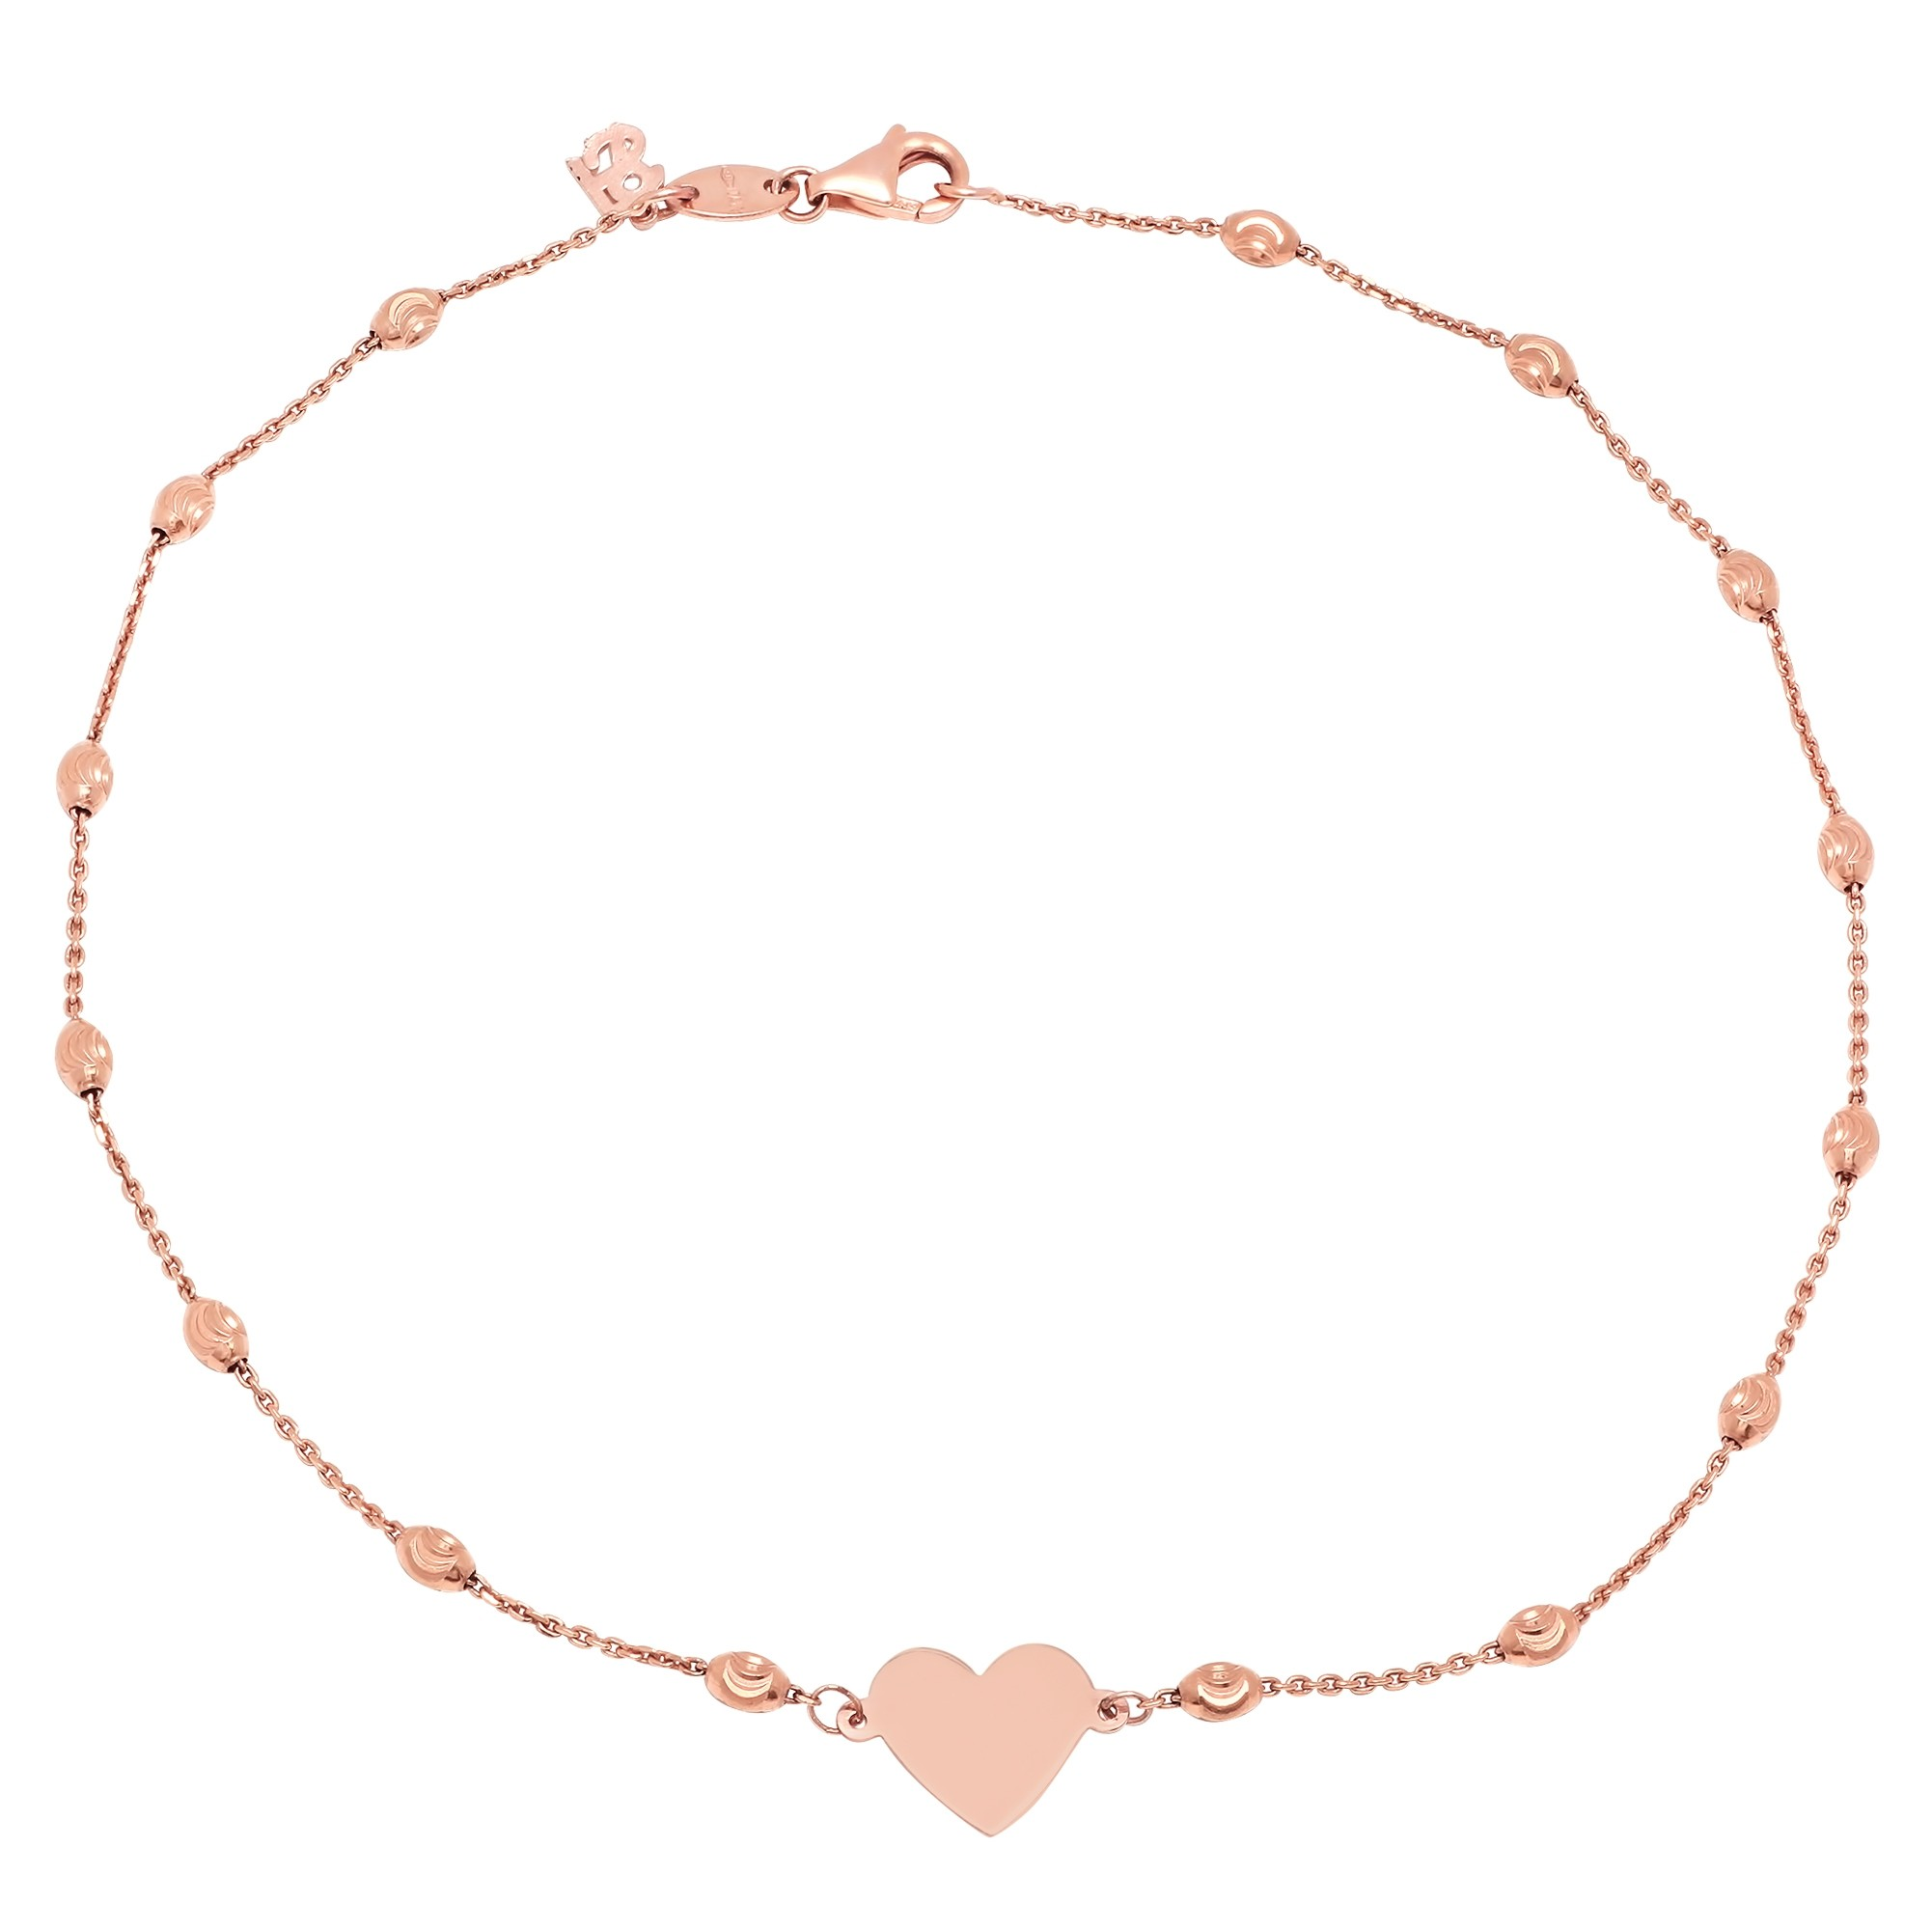 14k Rose Gold Floating Heart Beaded Chain Anklet